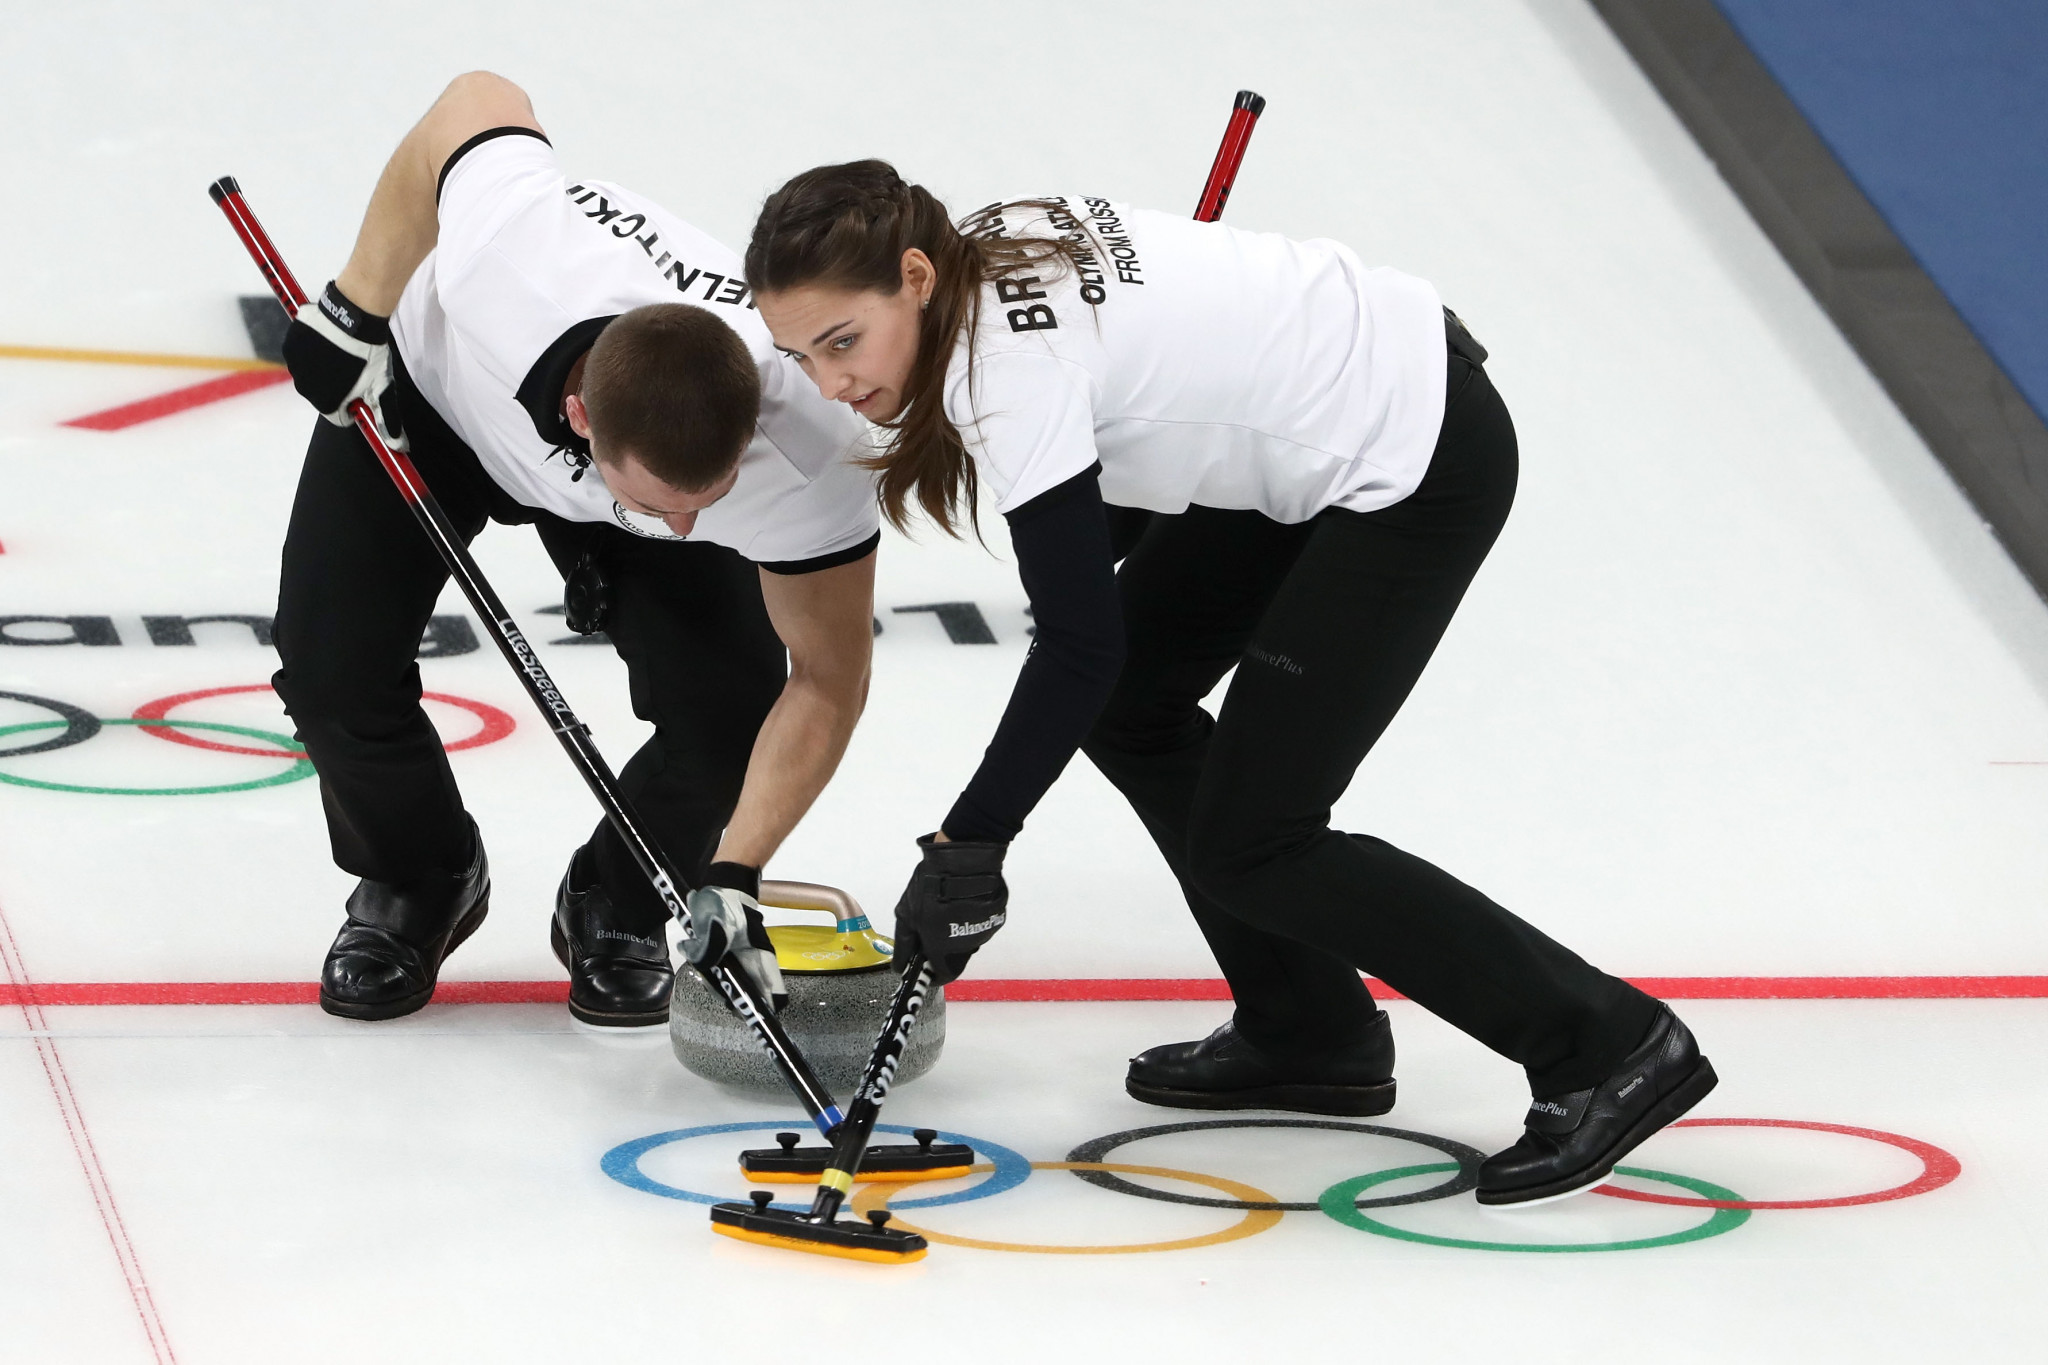 The husband and wife duo pictured competing at Pyeongchang 2018 ©Getty Images